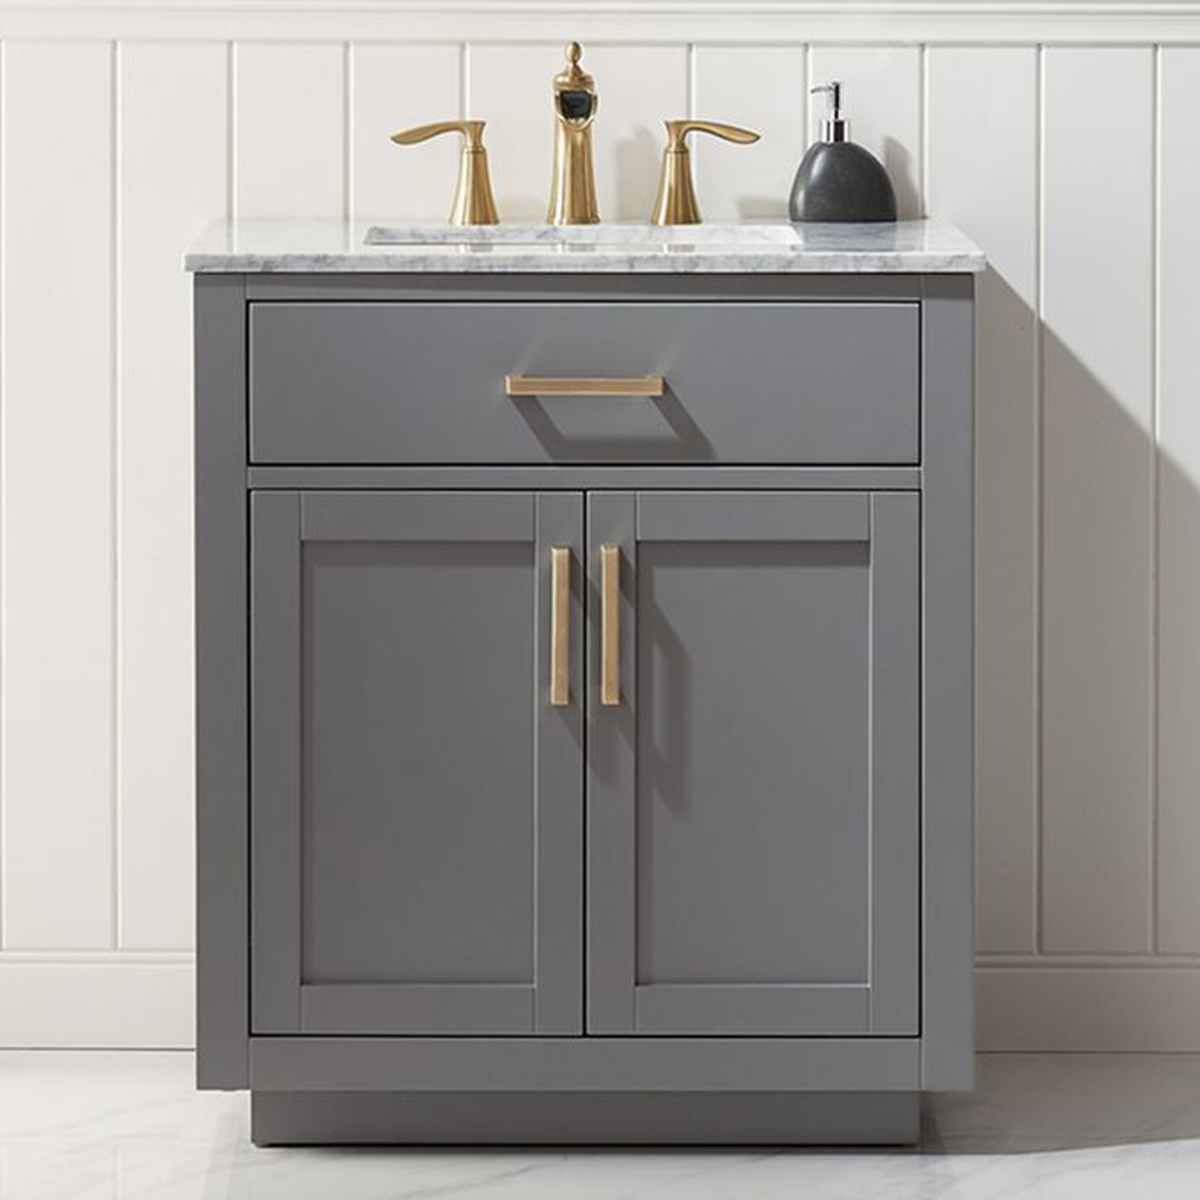 "Issac Edwards Collection 30"" Single Bathroom Vanity Set in Gray and Carrara White Marble Countertop without Mirror"